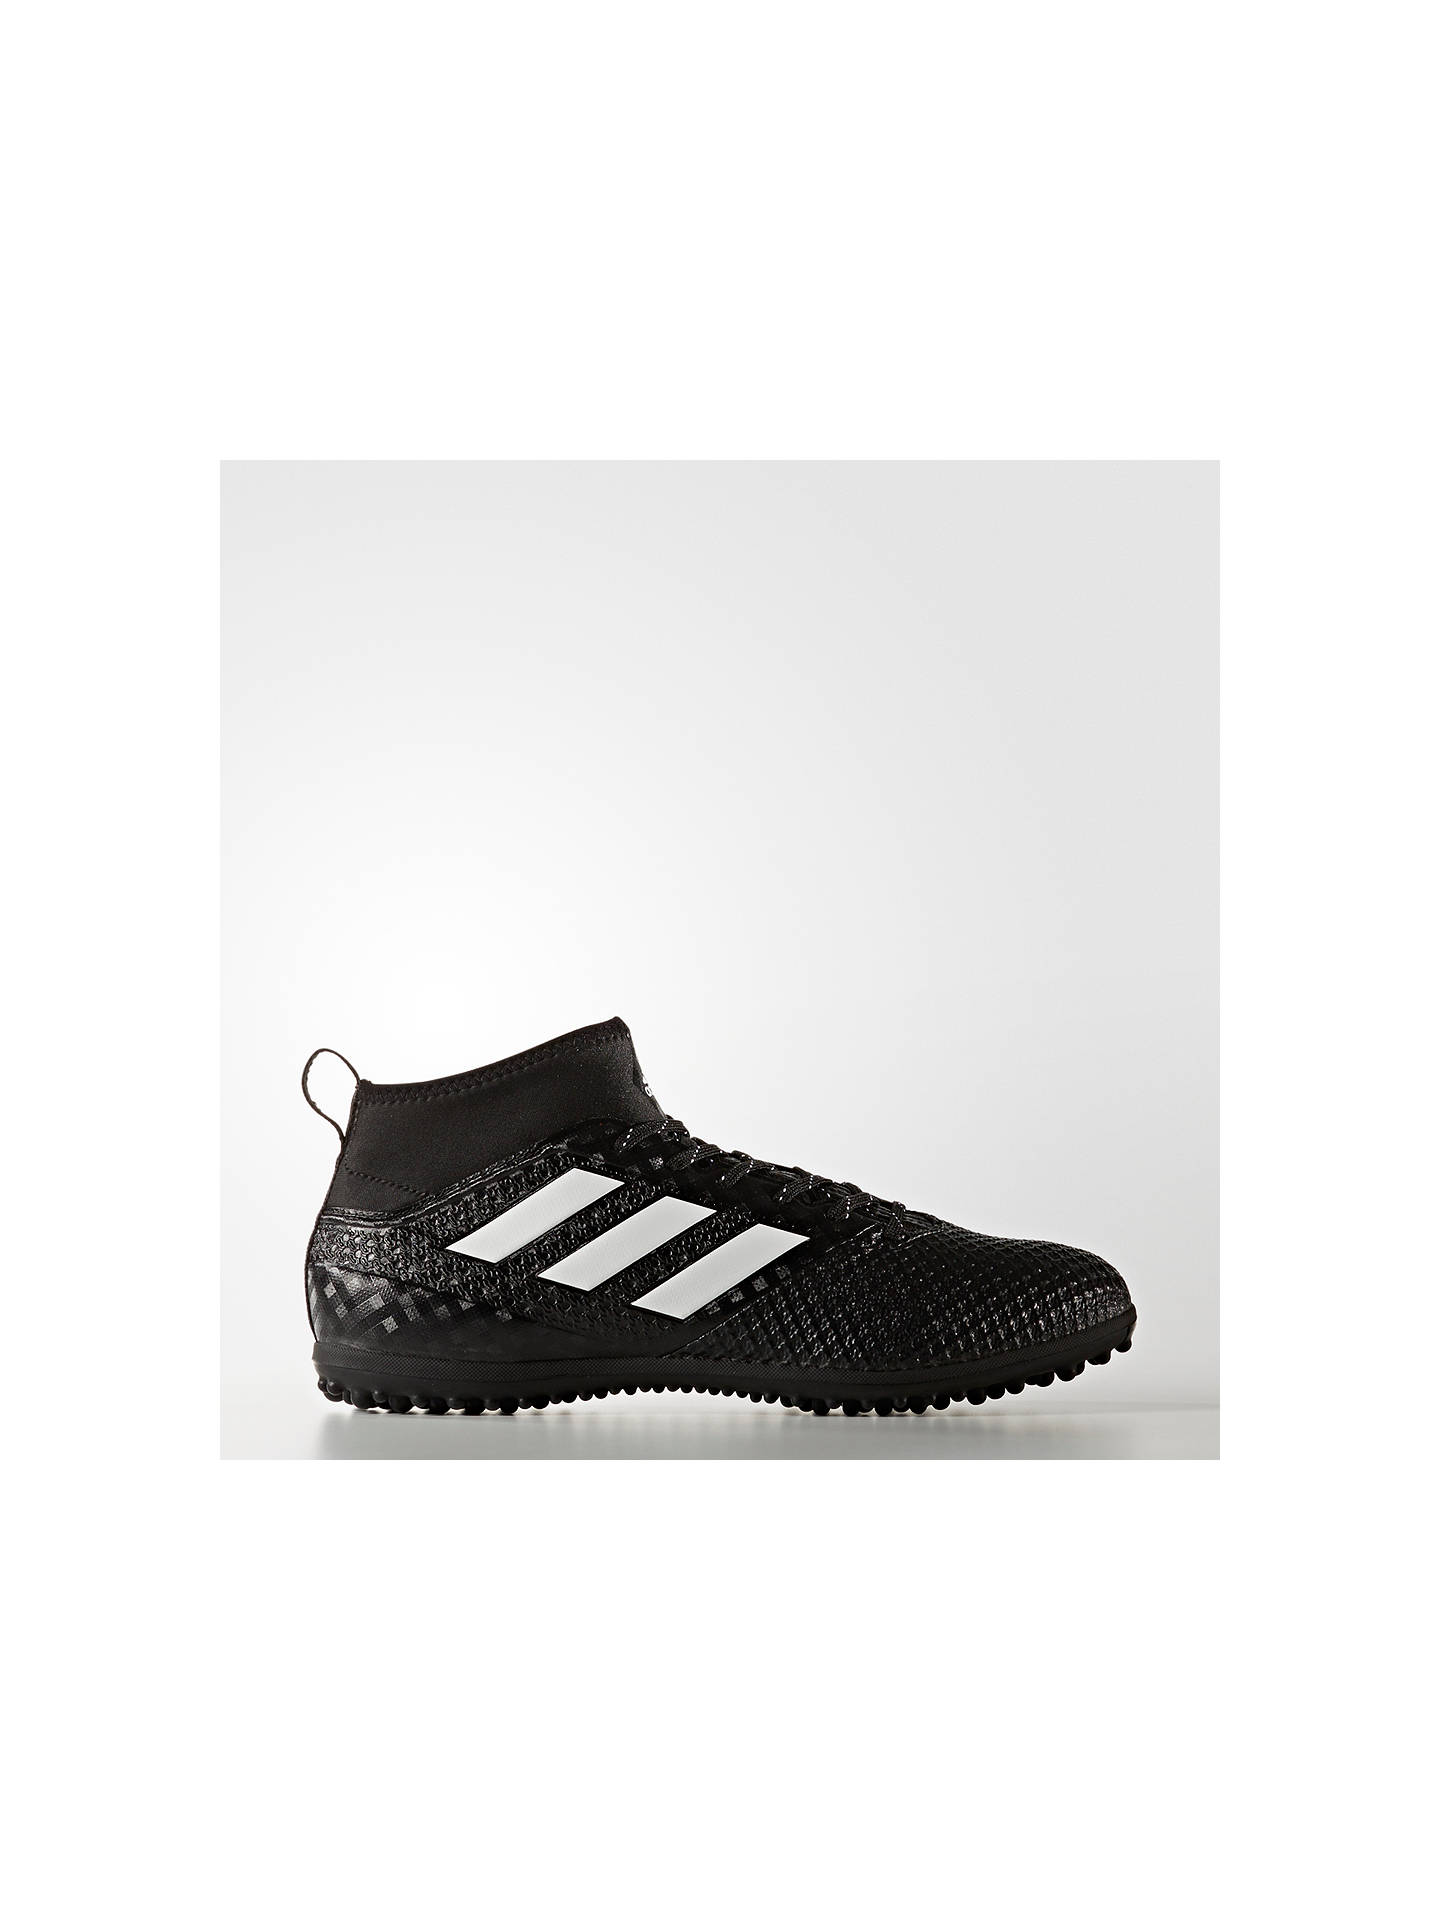 best sneakers 226d6 cc256 usa buyadidas ace 17.3 primemesh ag mens football boots black 7 online at  johnlewis. 081b9